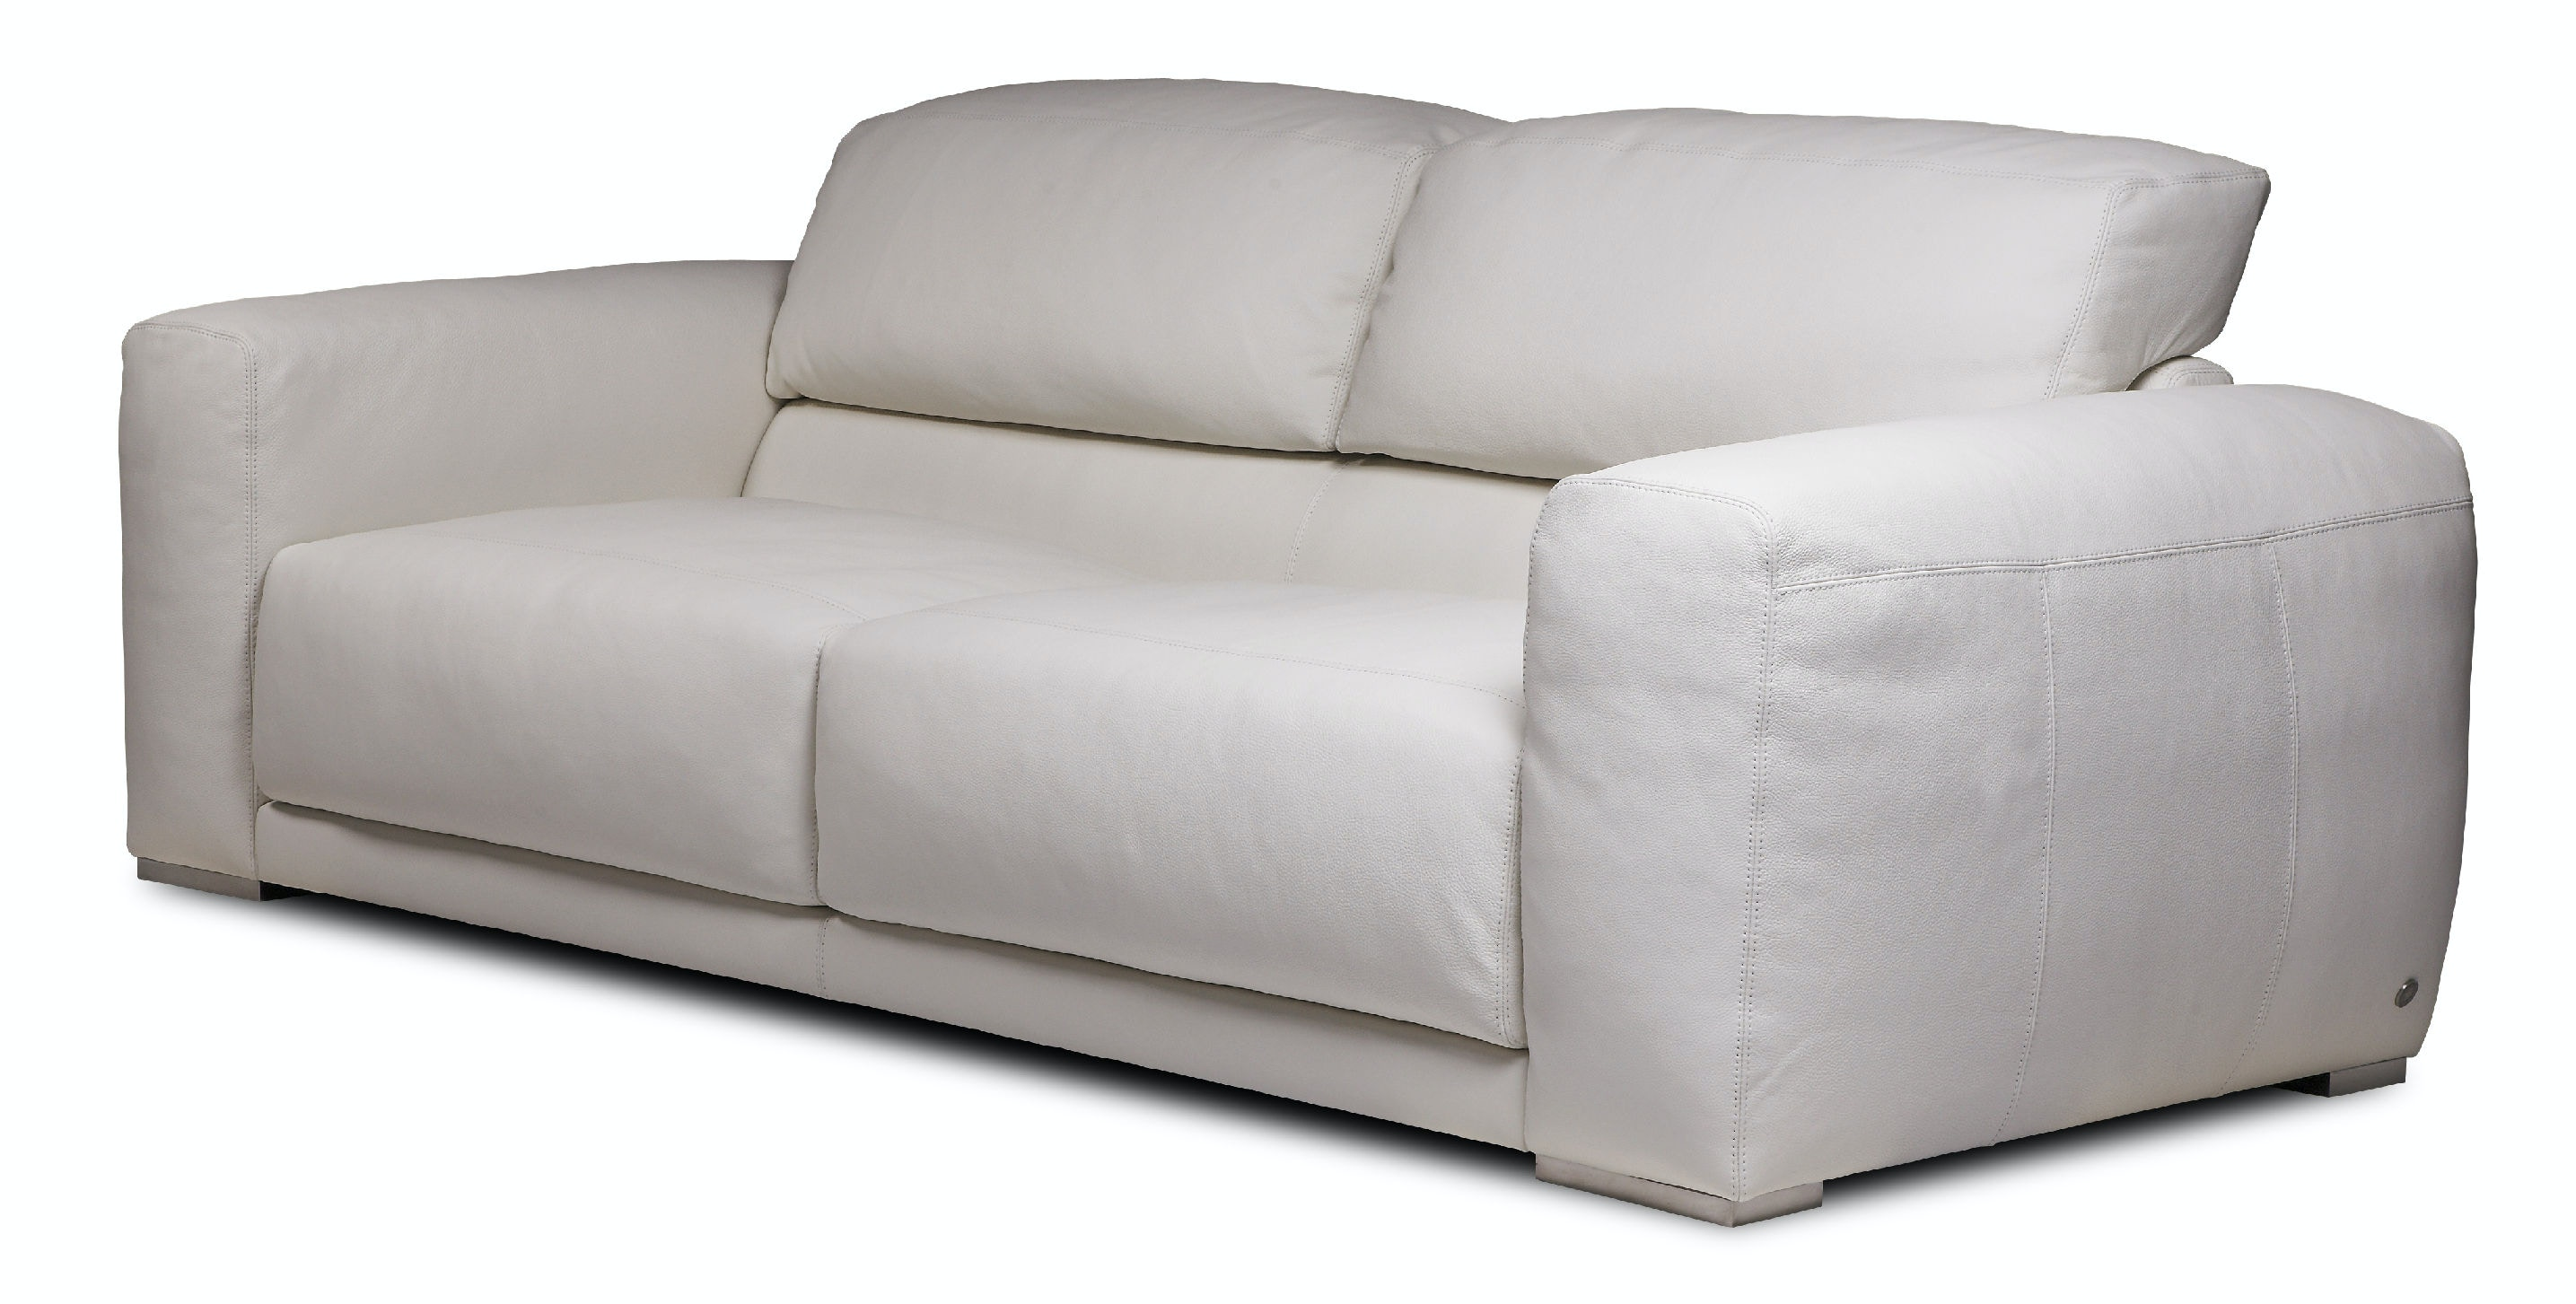 american leather living room two cushion sofa mlb so2 st left and right arm chairs left and right arm chairs